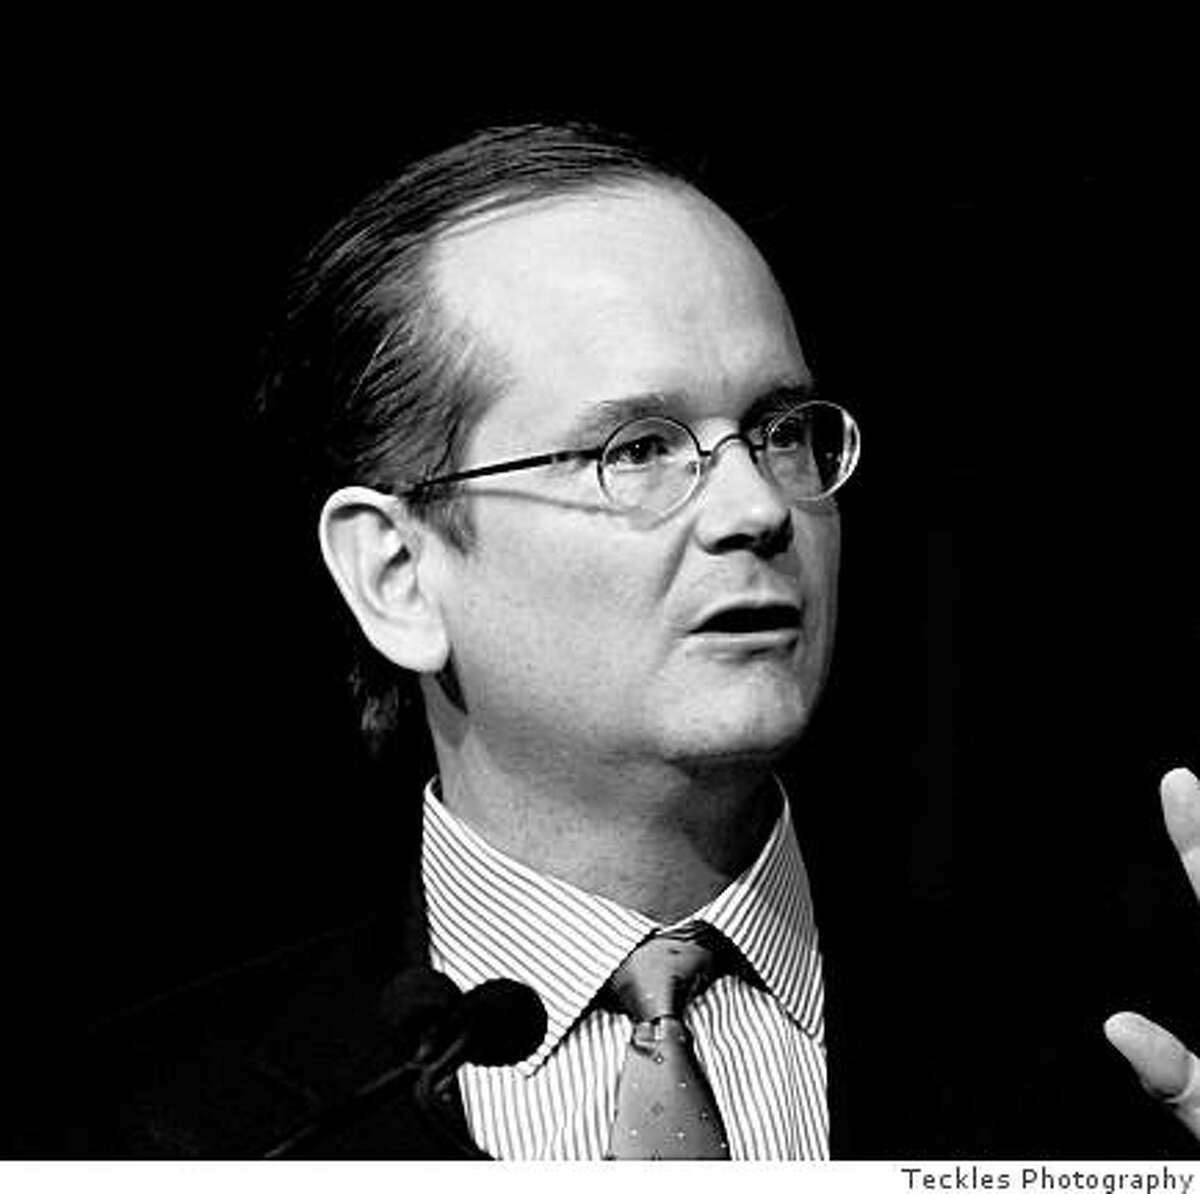 Lawrence Lessig, author of